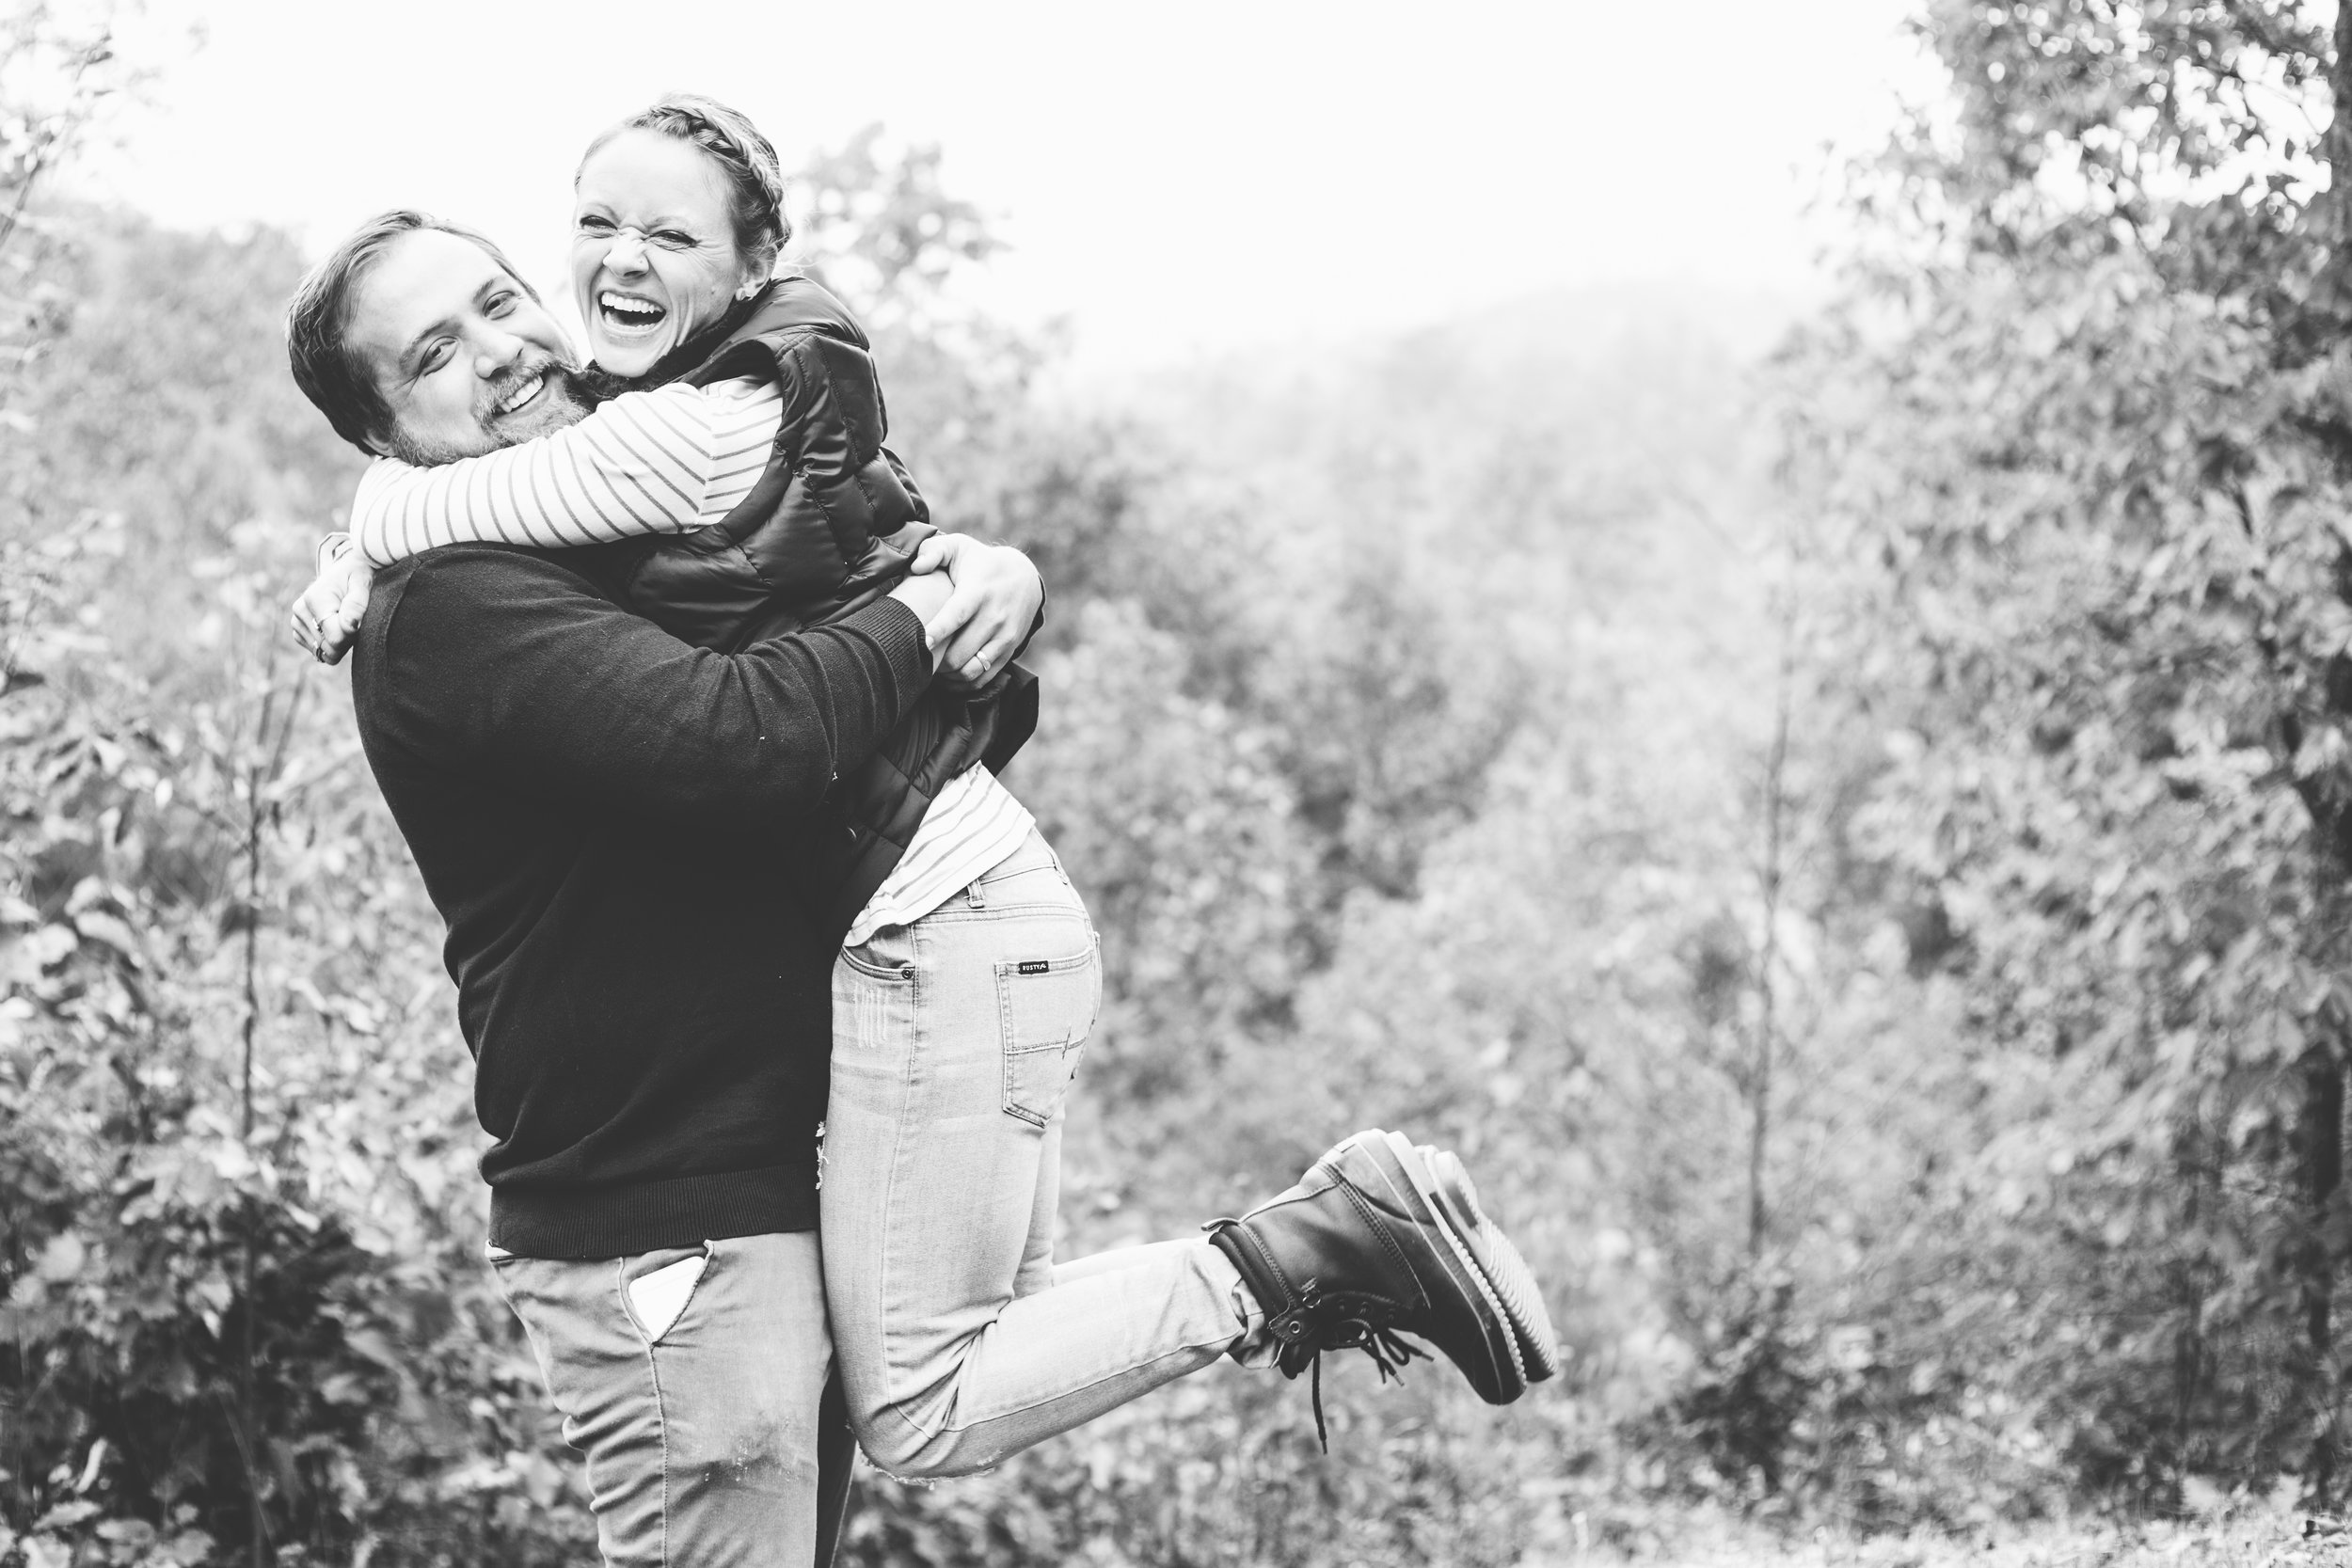 family, poses, outdoor, Knoxville, ideas, outfits, large, country, field, inspiration, funny, with toddler, color scheme, creative, siblings, fall, unique, natural, natural light, photoshoot, colorful, vibrant, fall, mountains, Gatlinburg, Tennessee, large, extended, mountains, black and white, couple